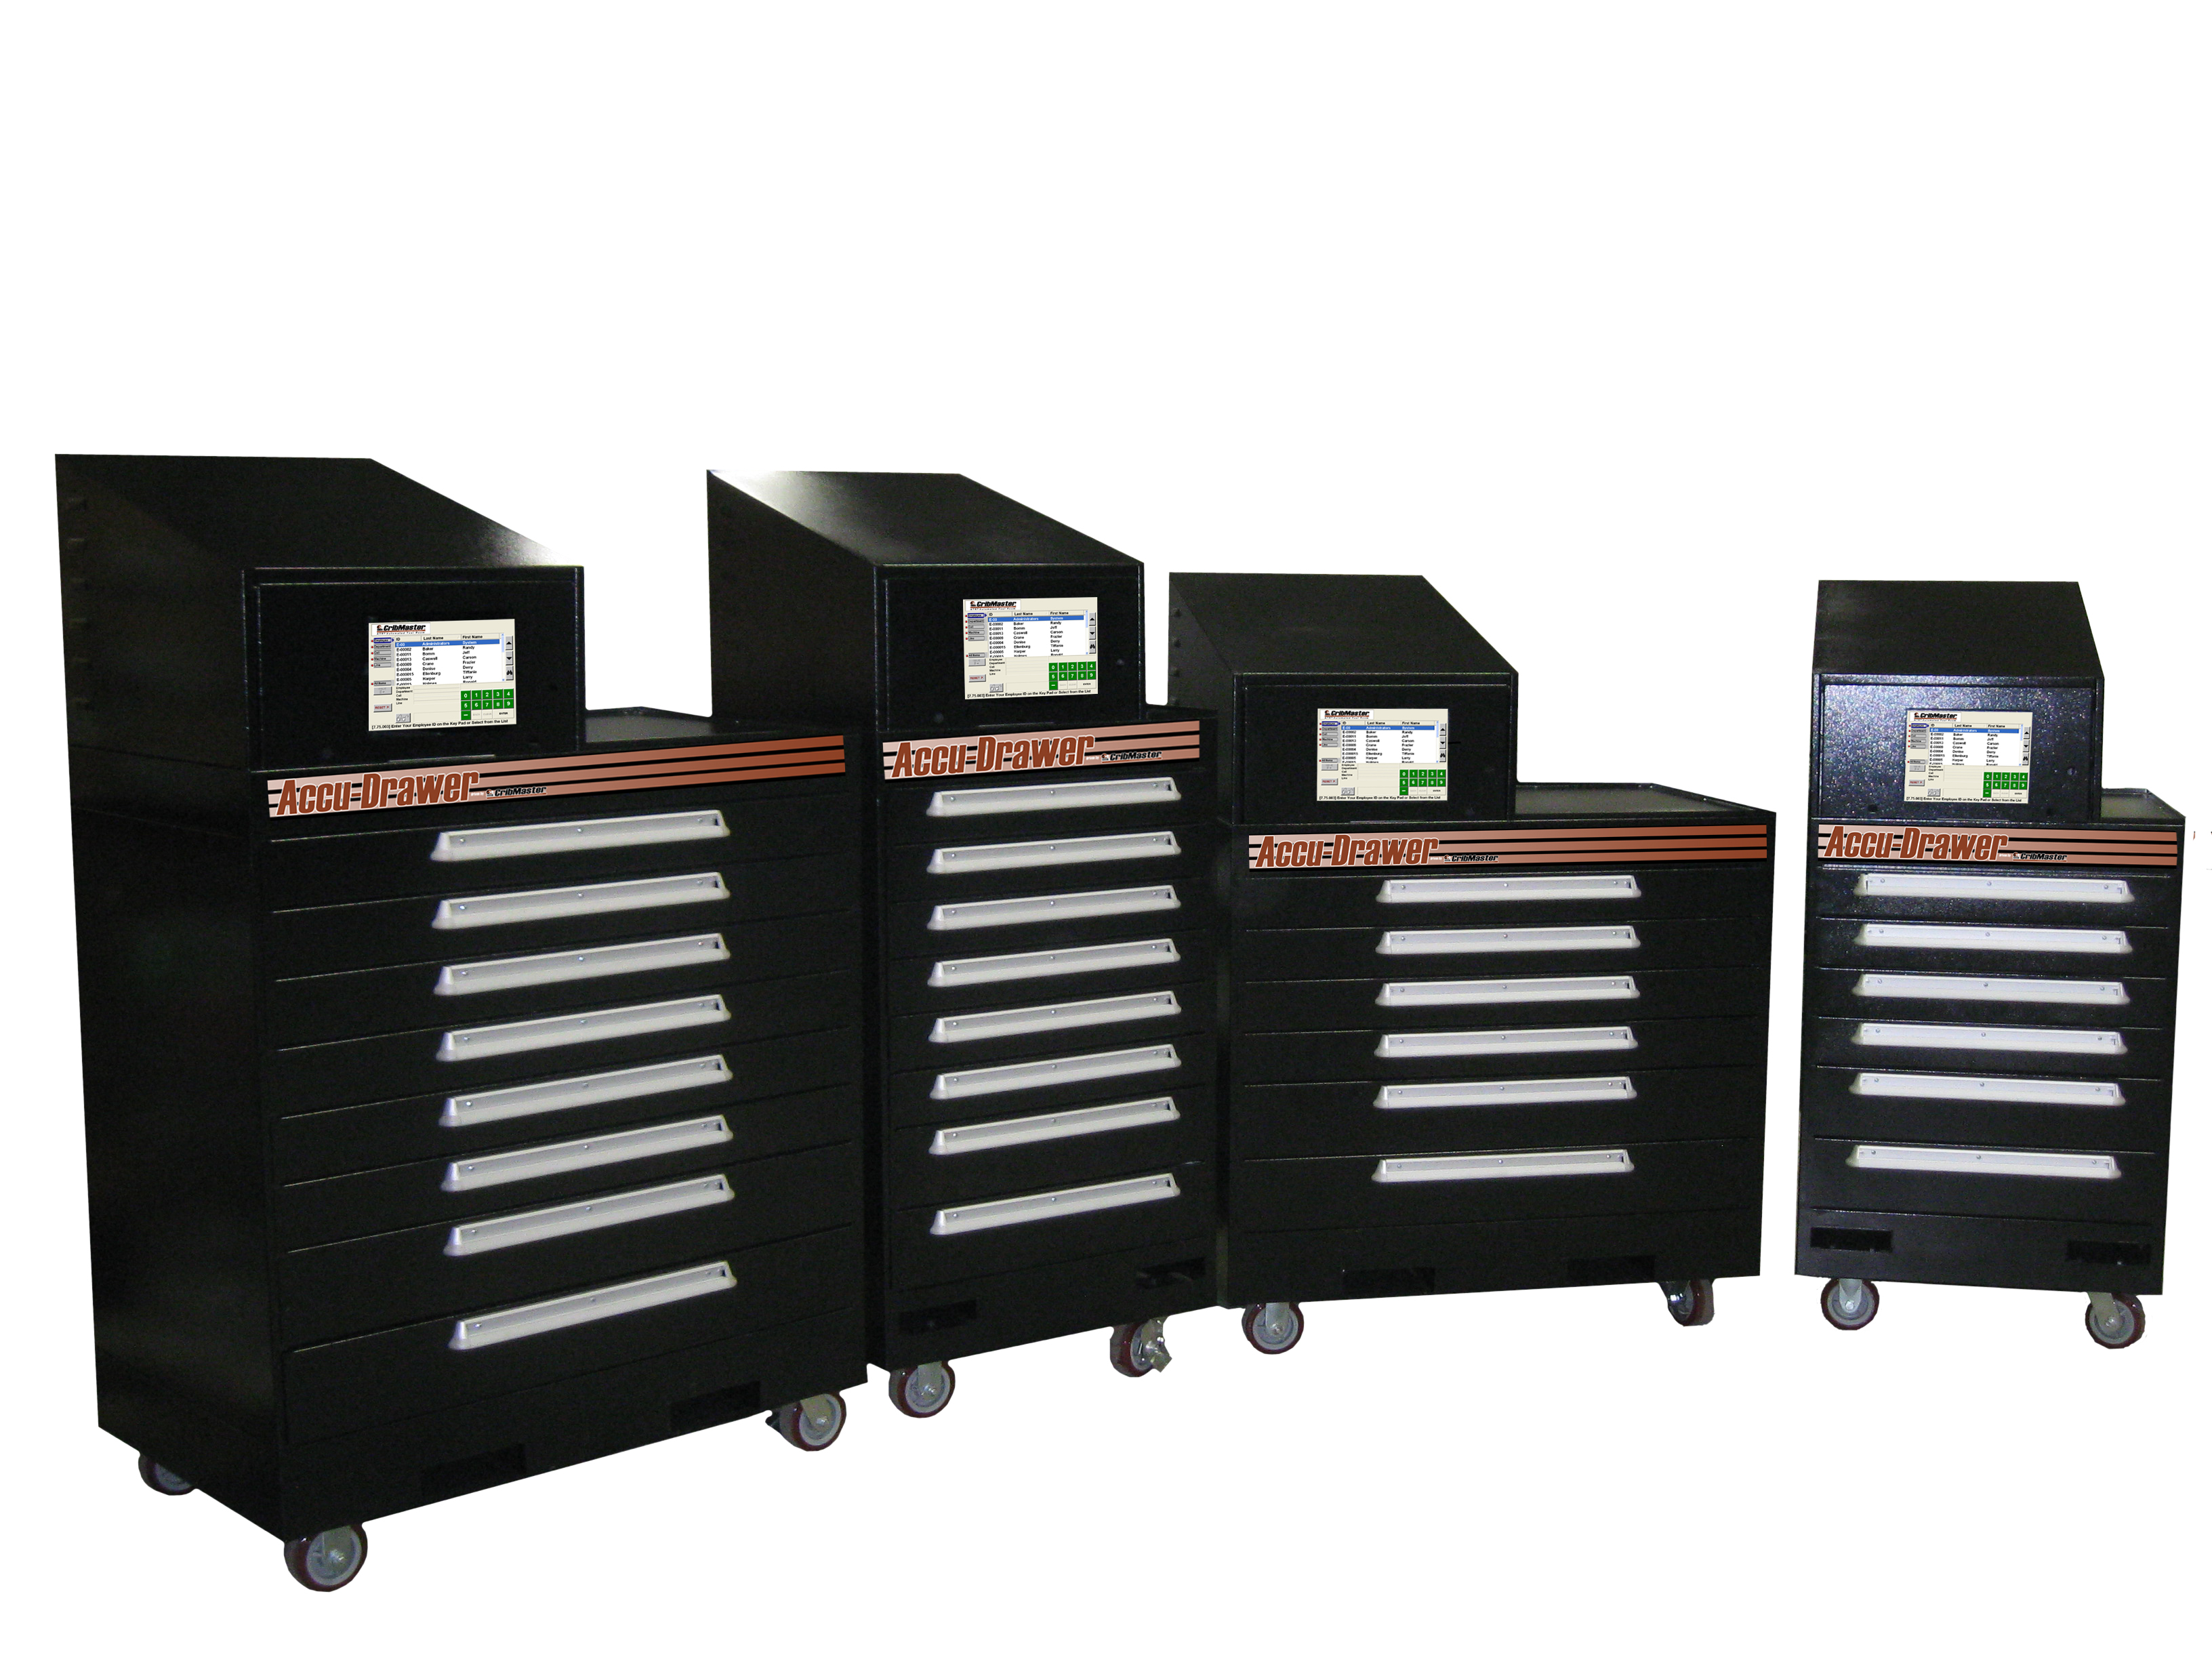 Cribmaster Showcases Complete Rfid Tool Control System At